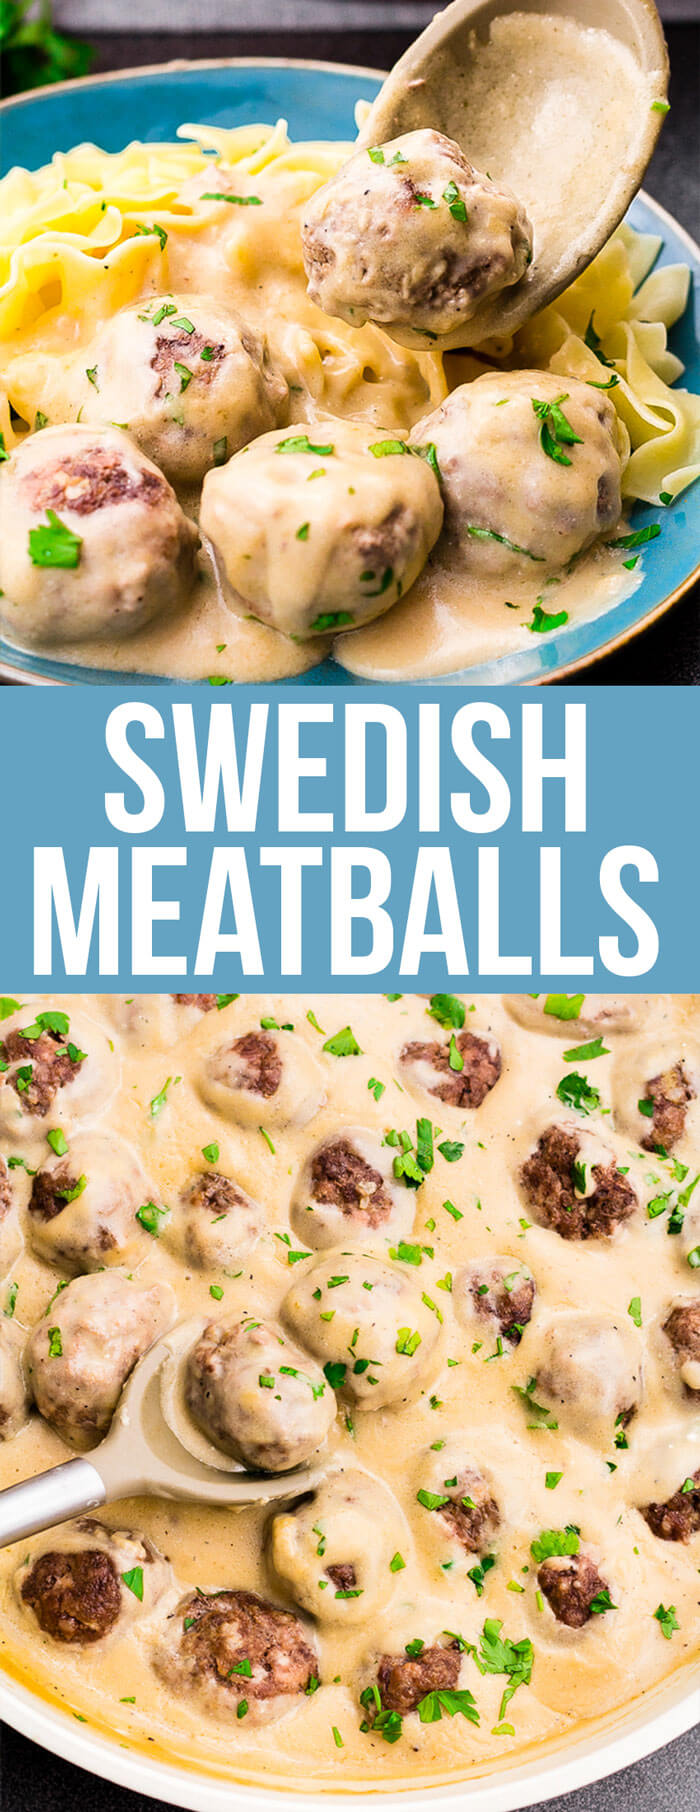 Swedish Meatballs: Mouthwatering, homemade, Swedish meatballs smothered in a decadent sauce; these beat IKEA every time!